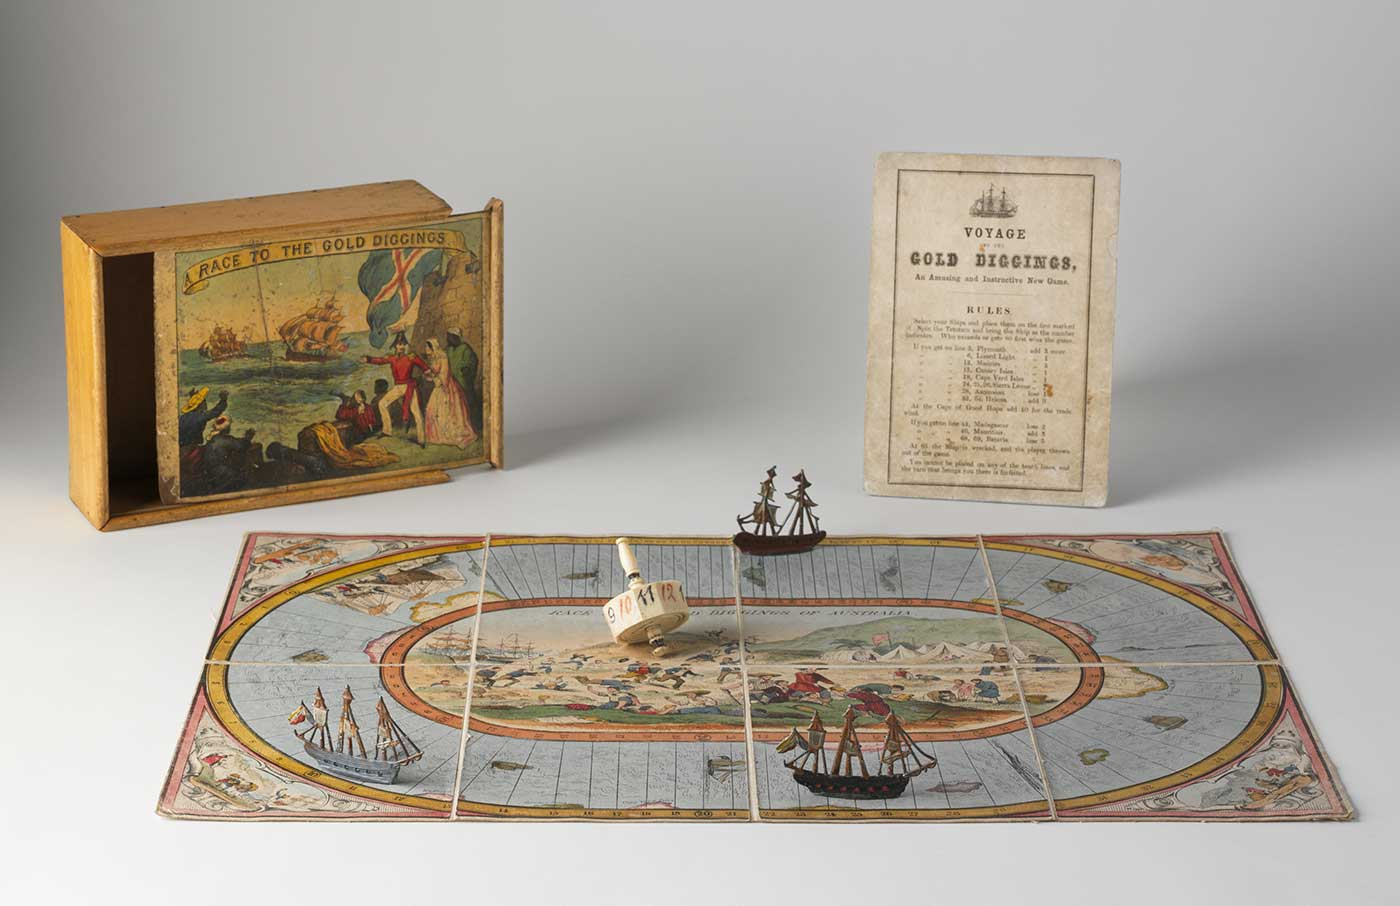 A playing board with three sailing ship markers and a dice, in front of a box with 'RACE TO THE GOLD DIGGINGS' printed on the sliding lid, and a printed rule sheet. - click to view larger image